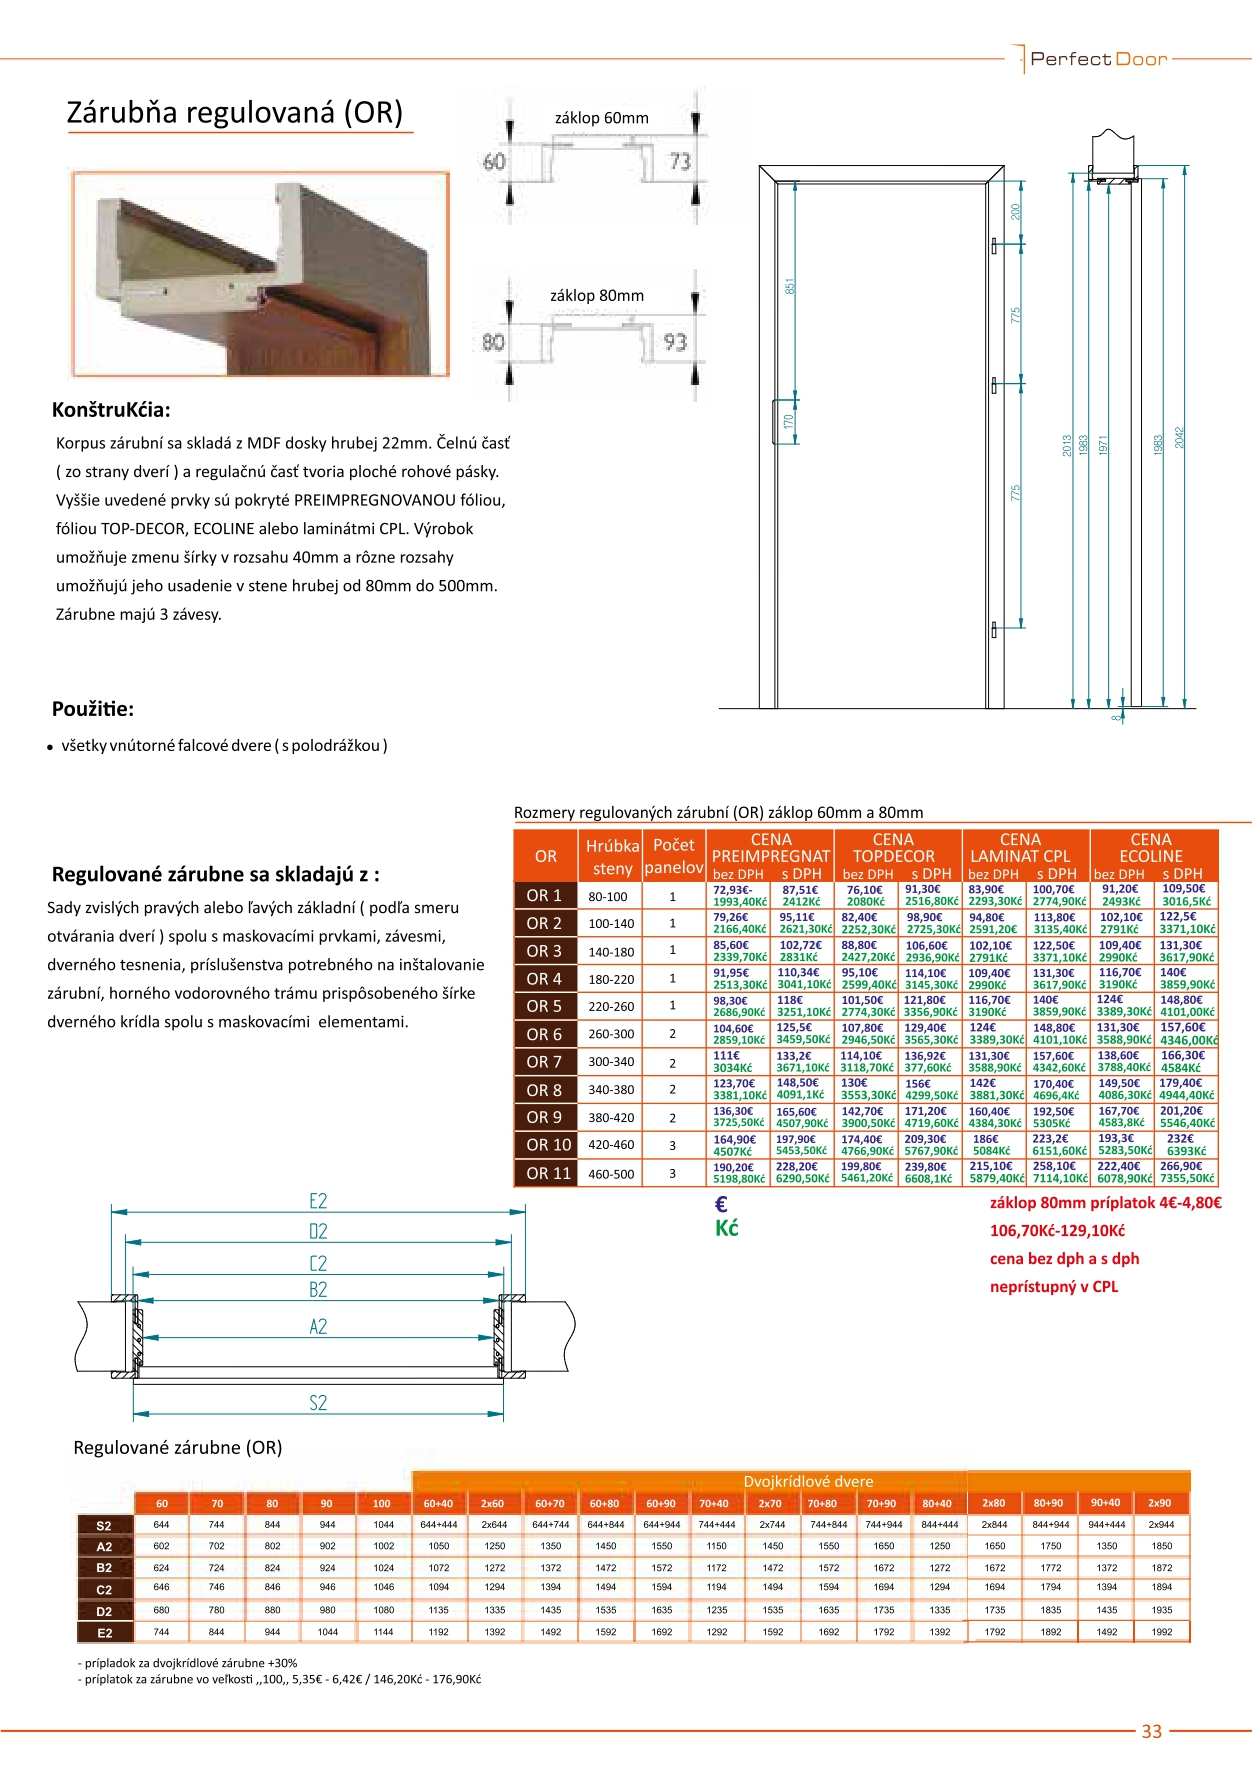 Perfectdoor katalog  1 2019 pages-to-jpg-0033